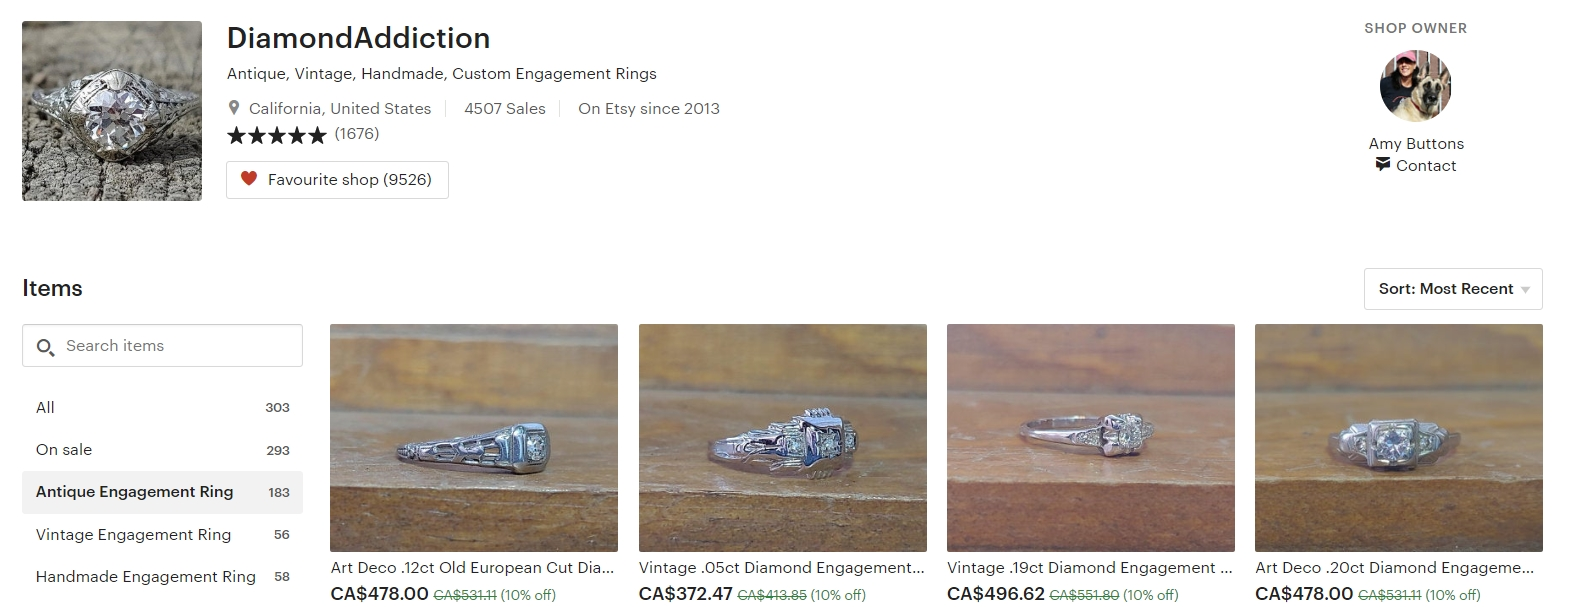 Antique Vintage Engagement Rings by DiamondAddiction on Etsy